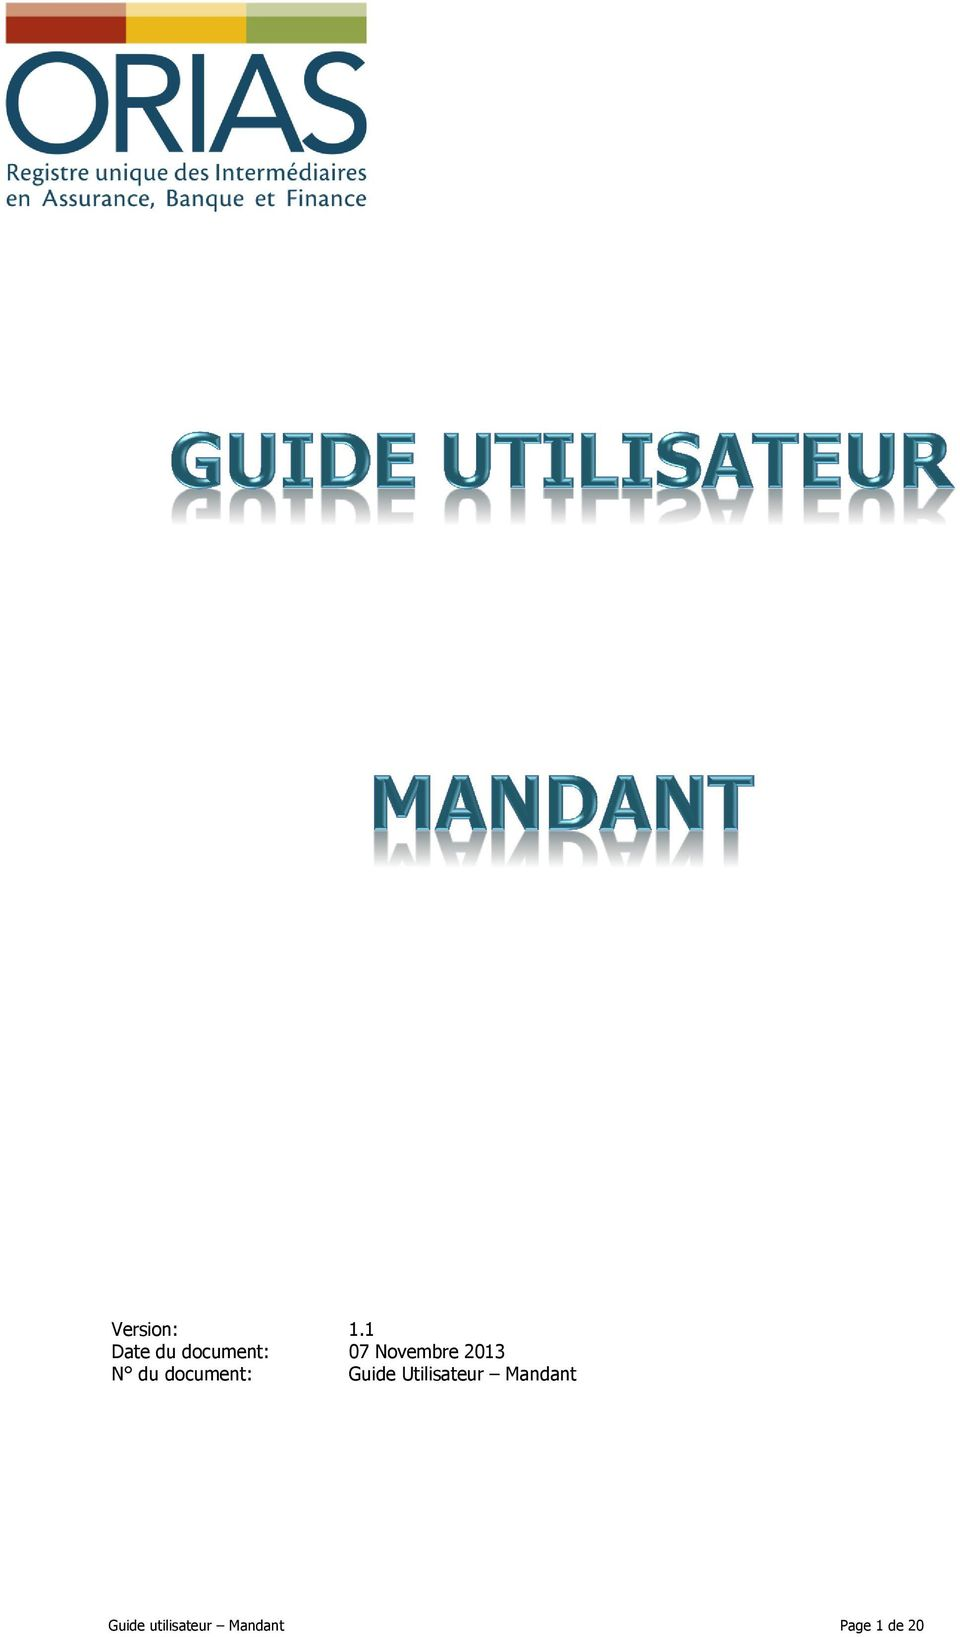 2013 N du document: Guide